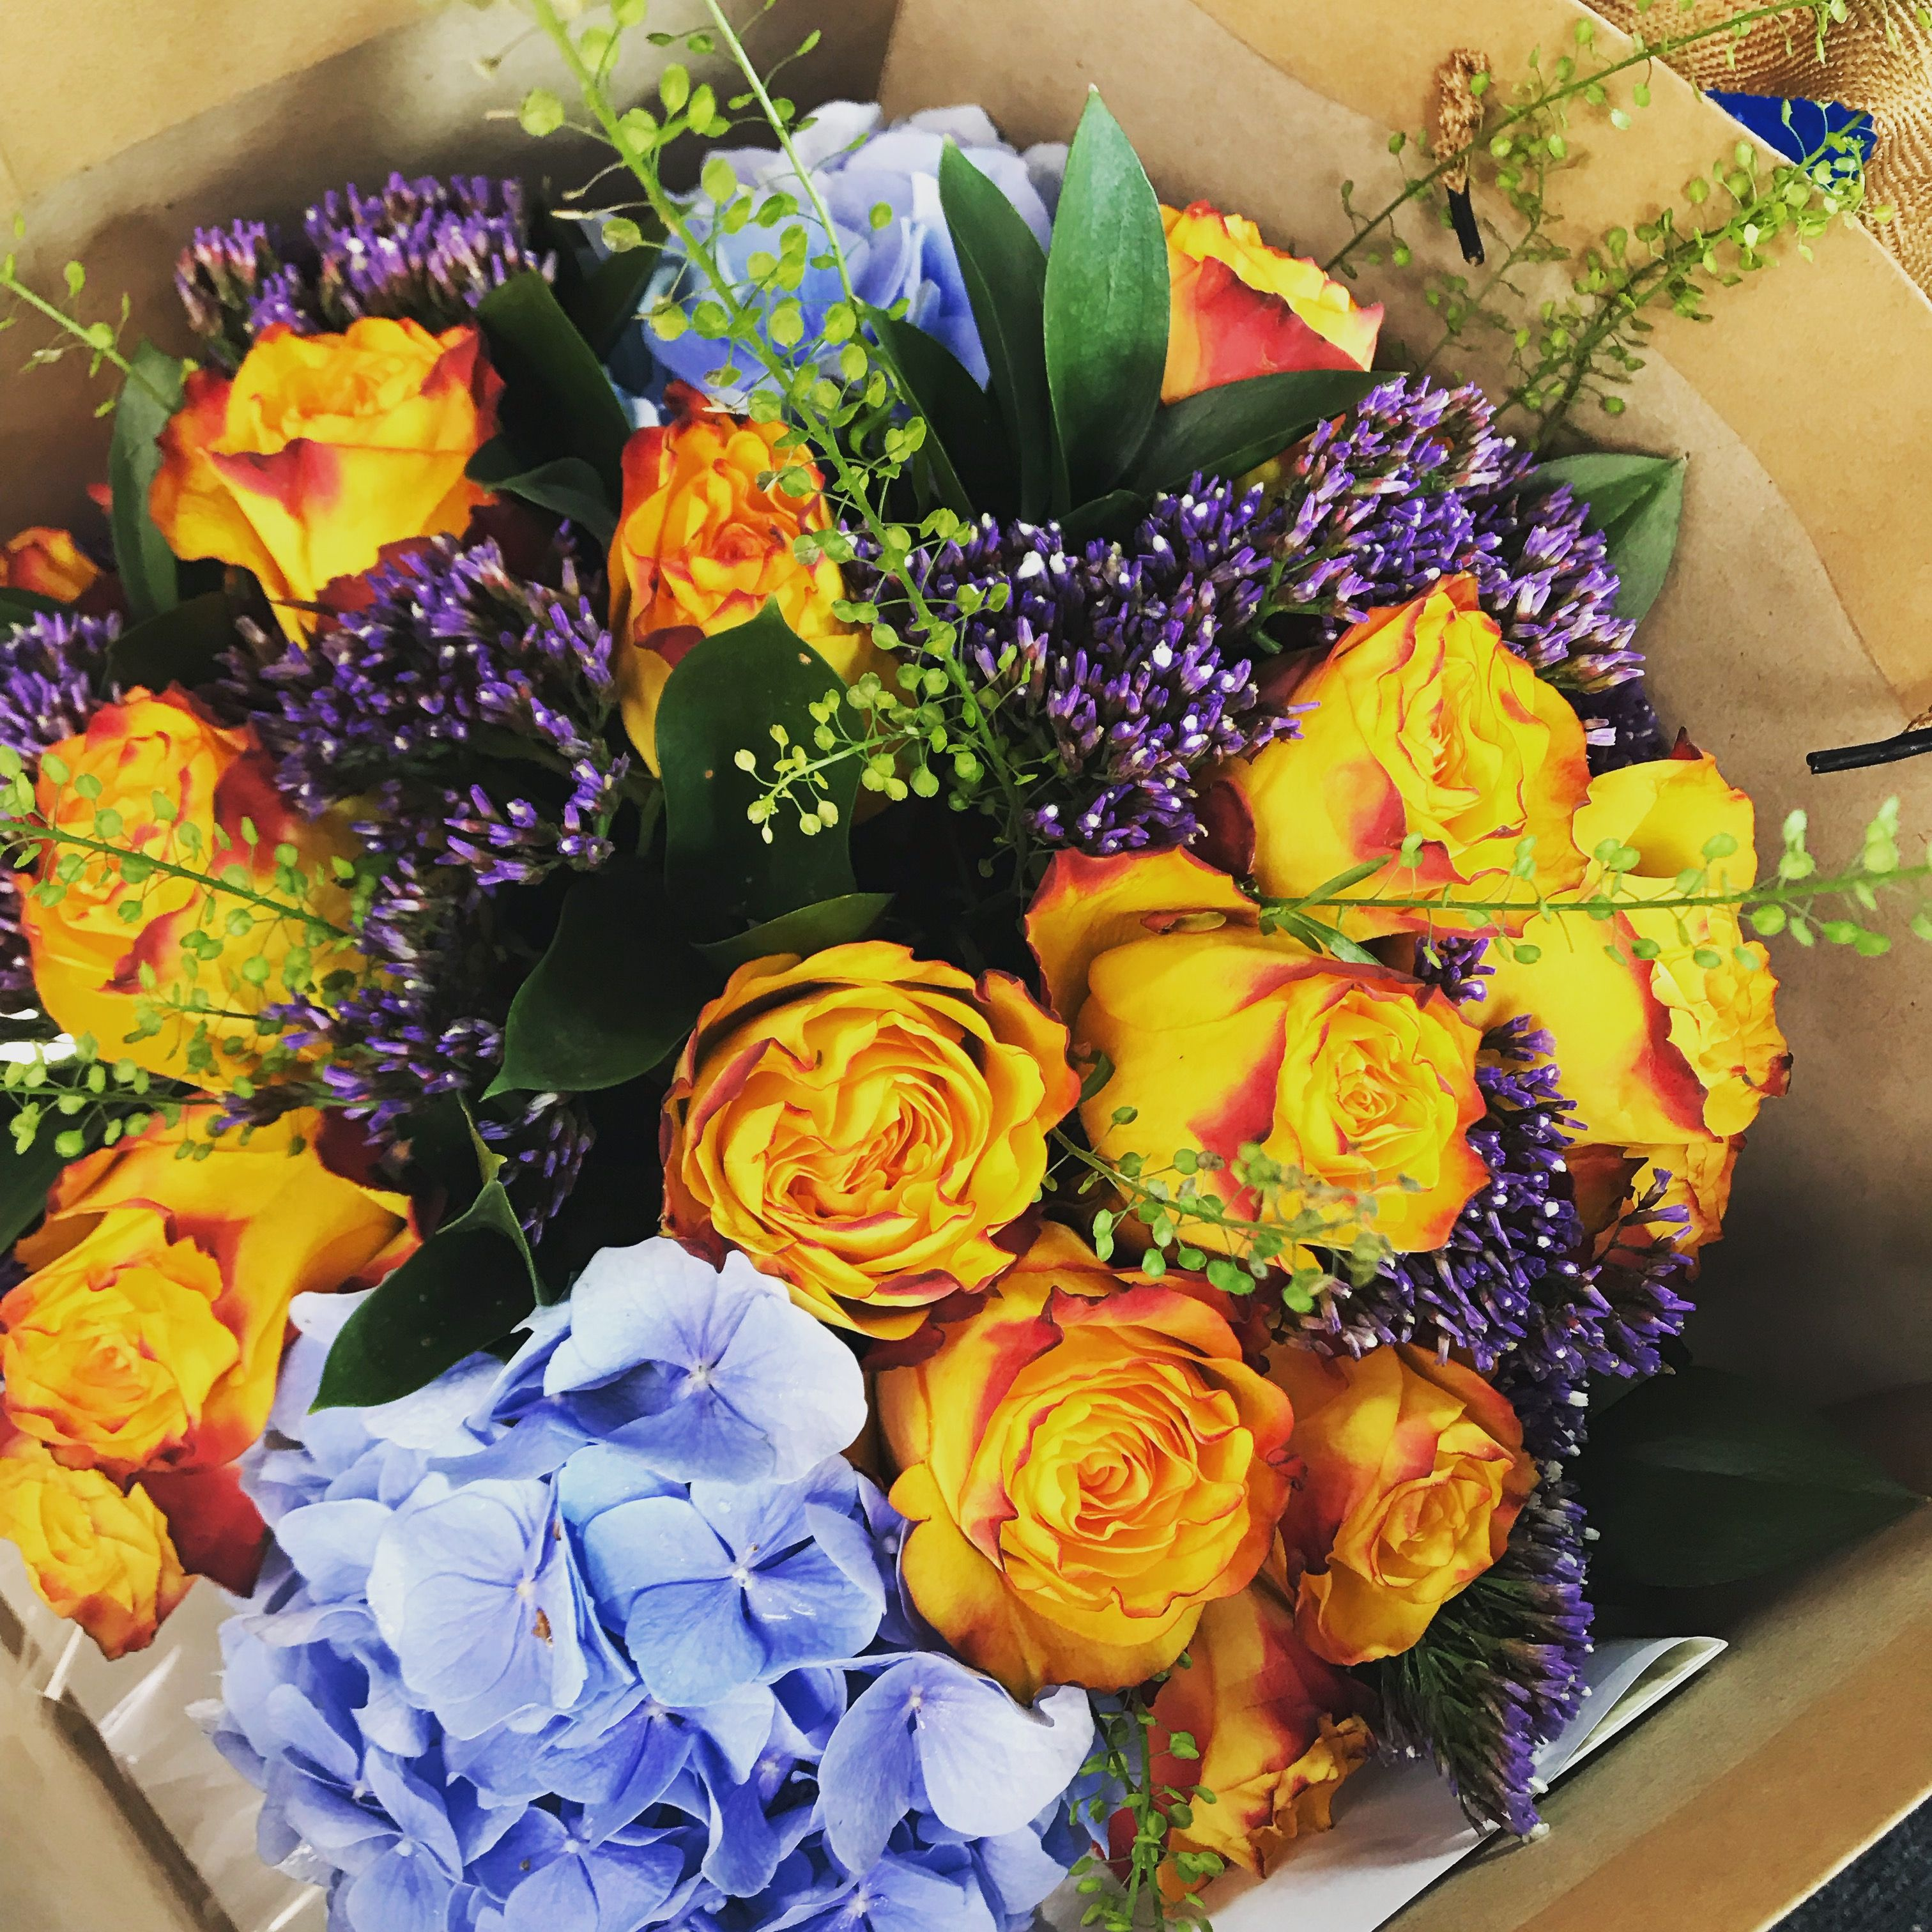 Flower Delivery Singapore Send Flowers For 39 With Delivery Anywhere In Singapore Flower Delivery Same Day Flower Delivery Fast Flowers